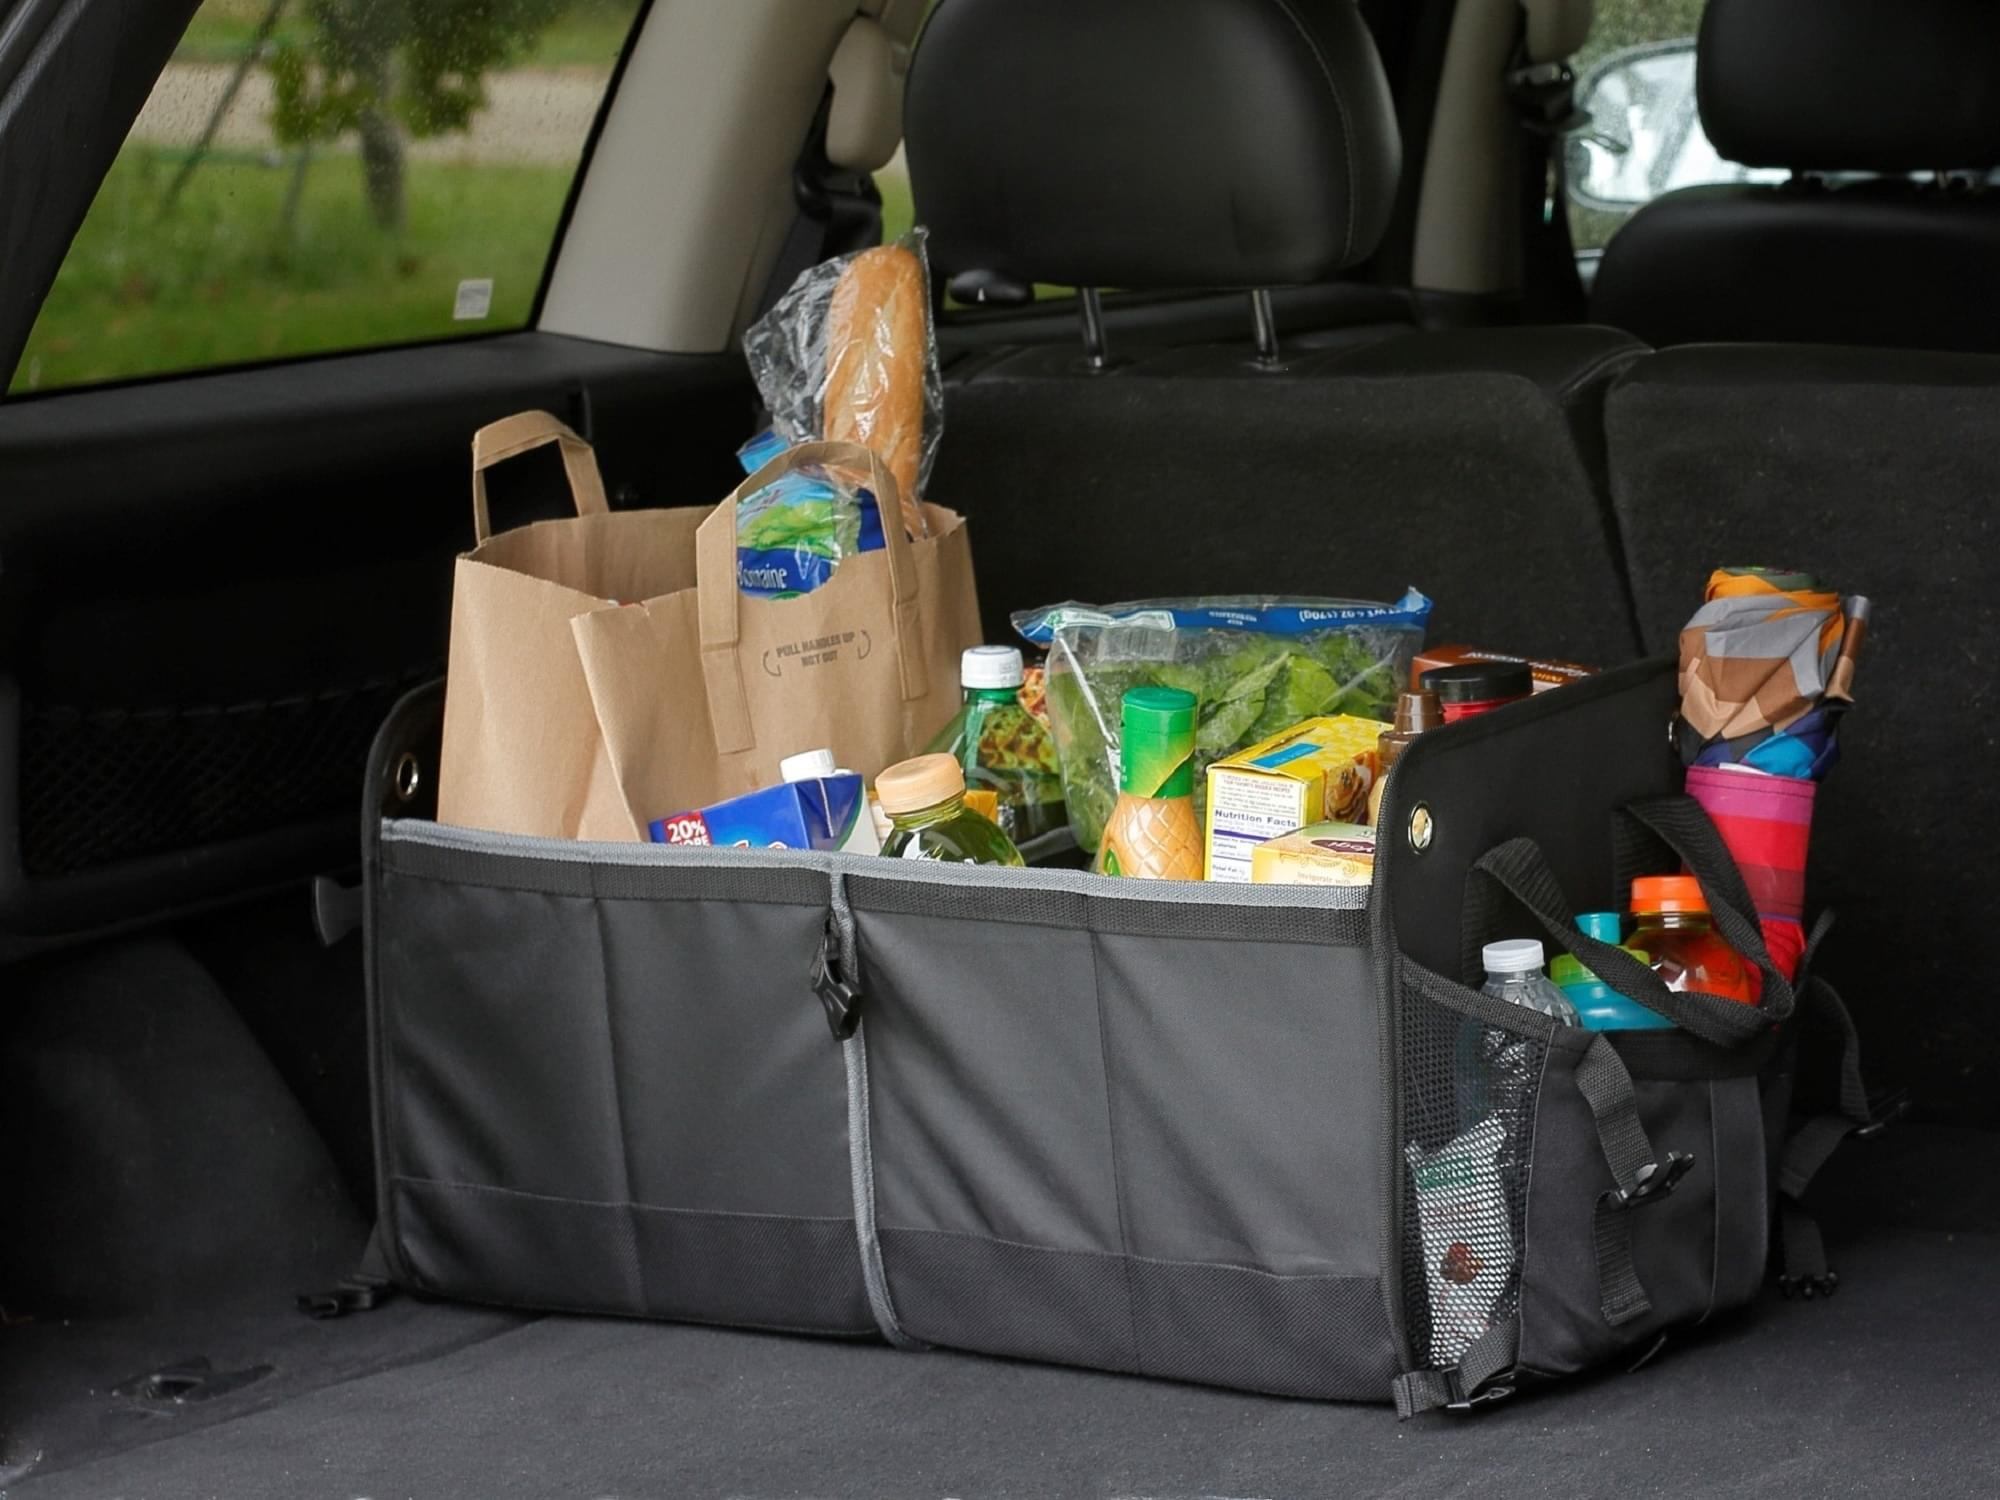 trunk organizer shown with automotive supplies in the back of an SUV